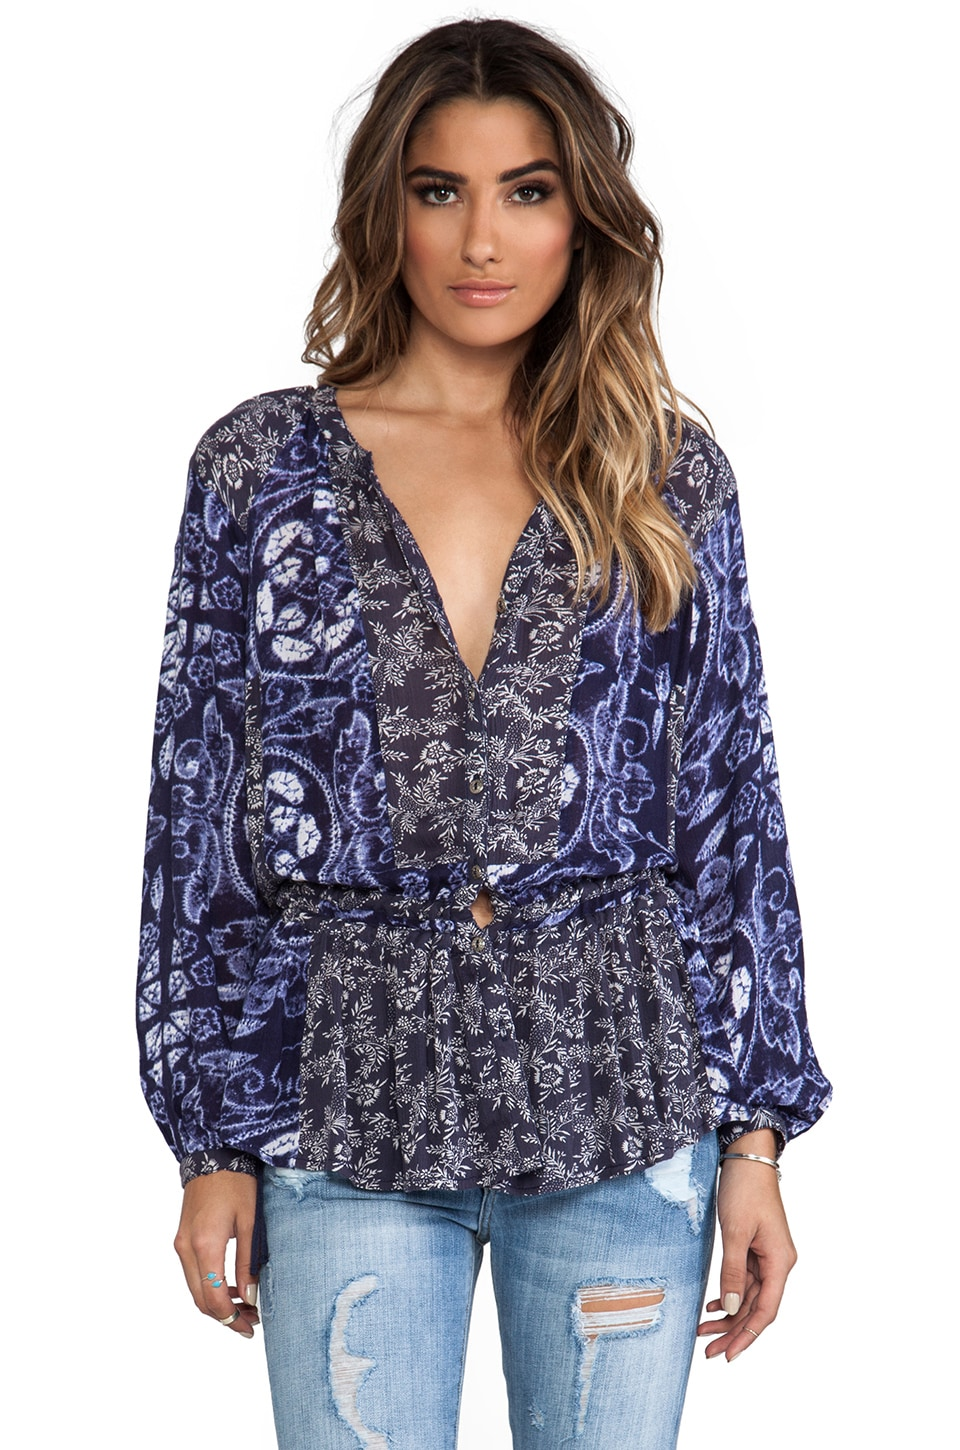 Free People Ratio Print Tunic in Indigo Combo